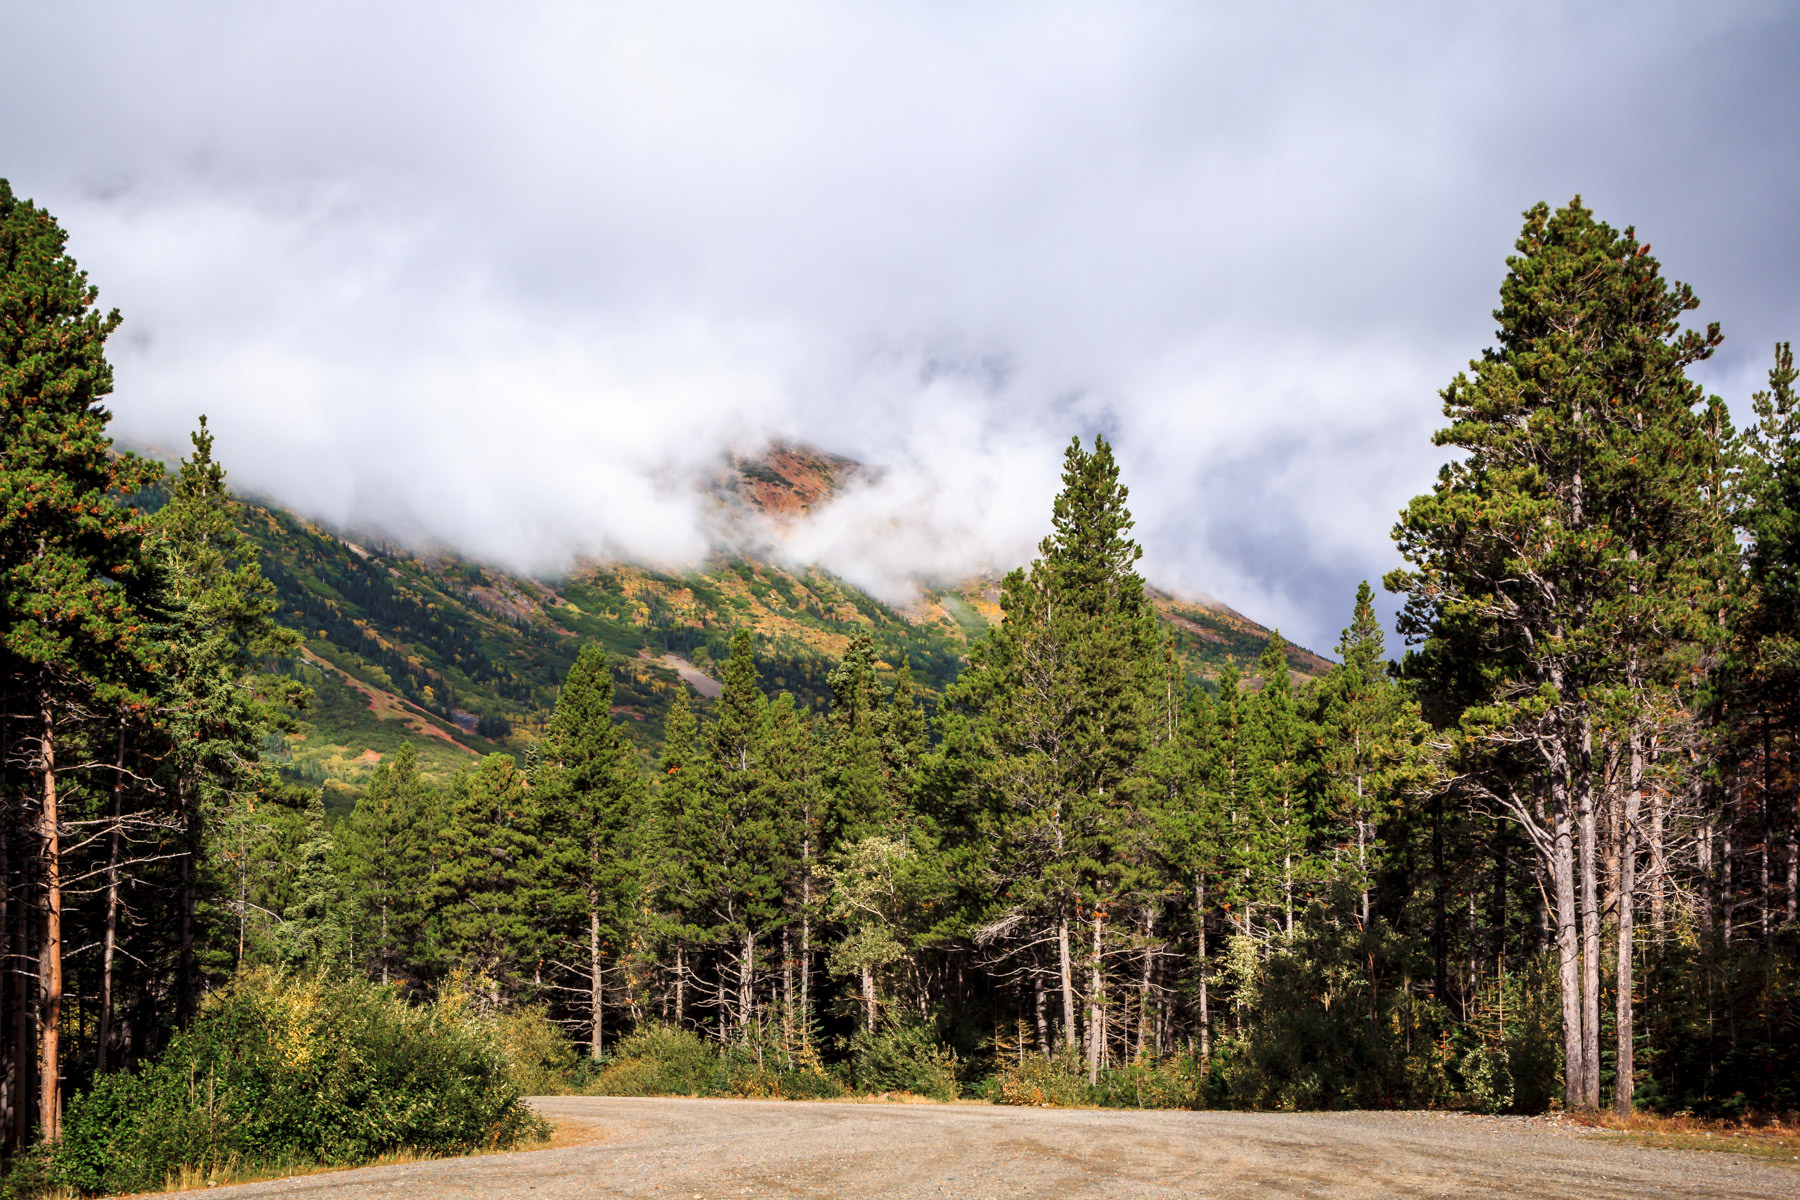 Evergreen trees grow along a gravel road at the base of a cloud-wrapped mountain along the shore of British Columbia's Tutshi Lake.